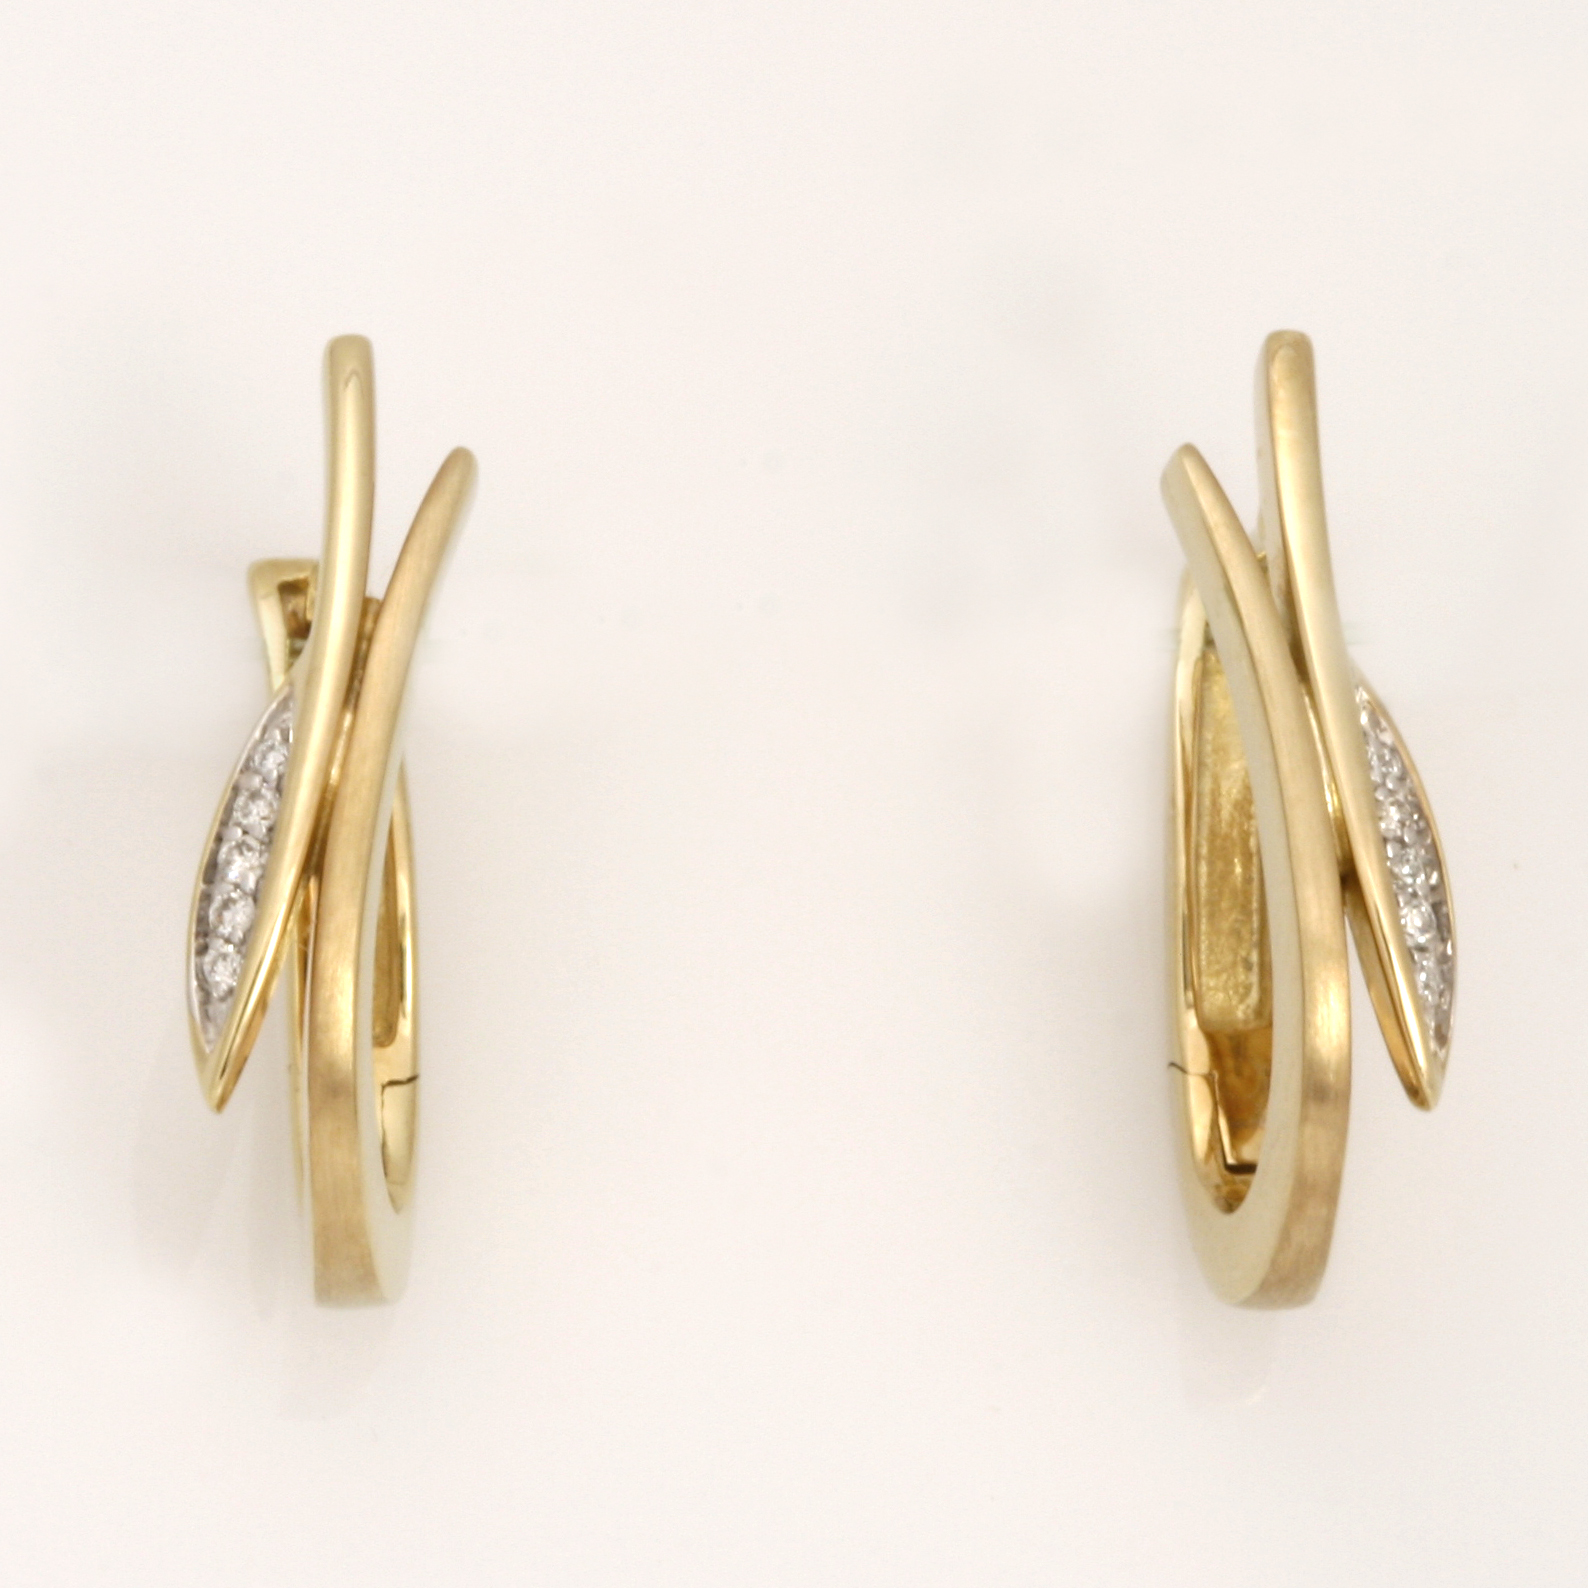 E0204 9ct yellow gold and diamond huggies earrings diamonds 0.055cts matte and polished $750